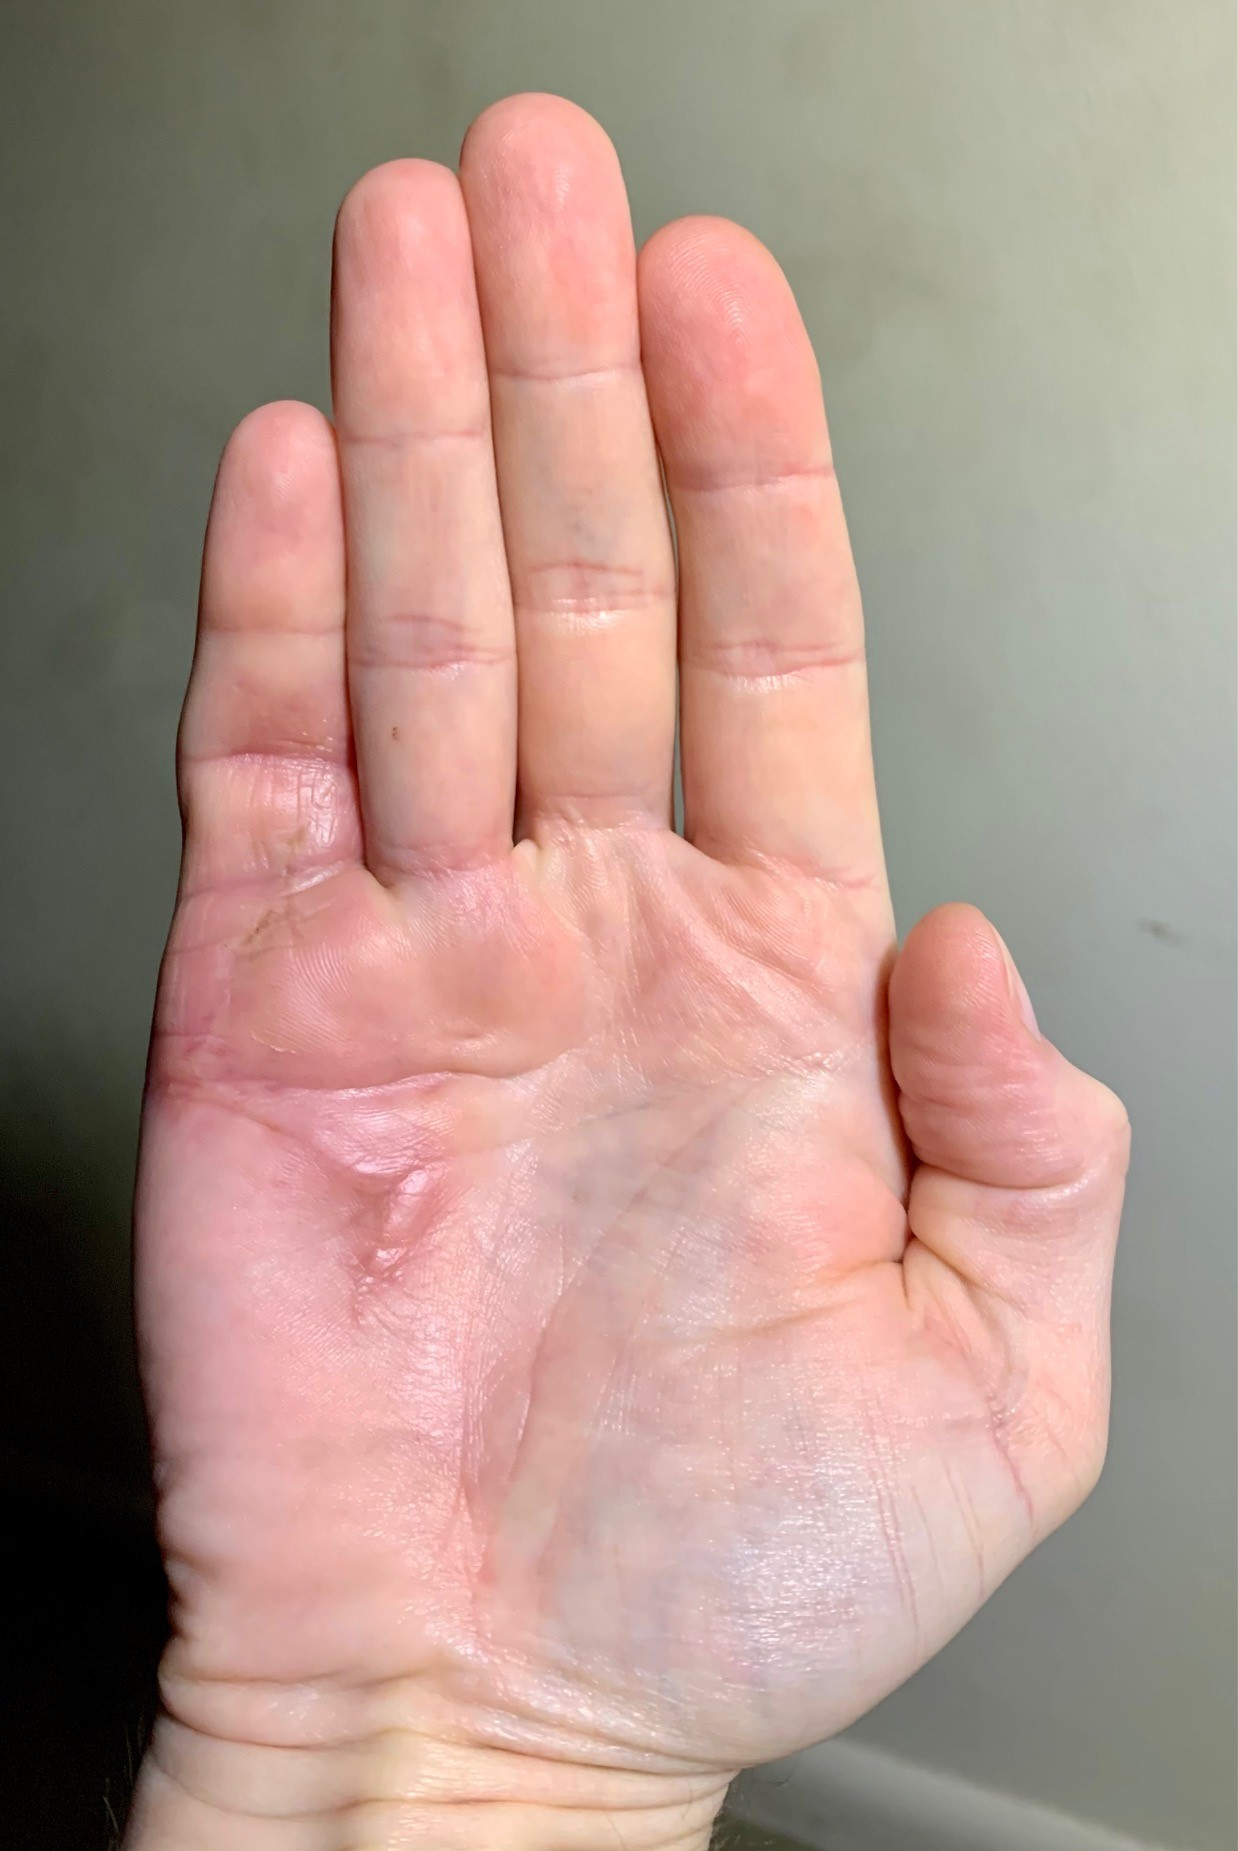 Right hand, five weeks post-surgery